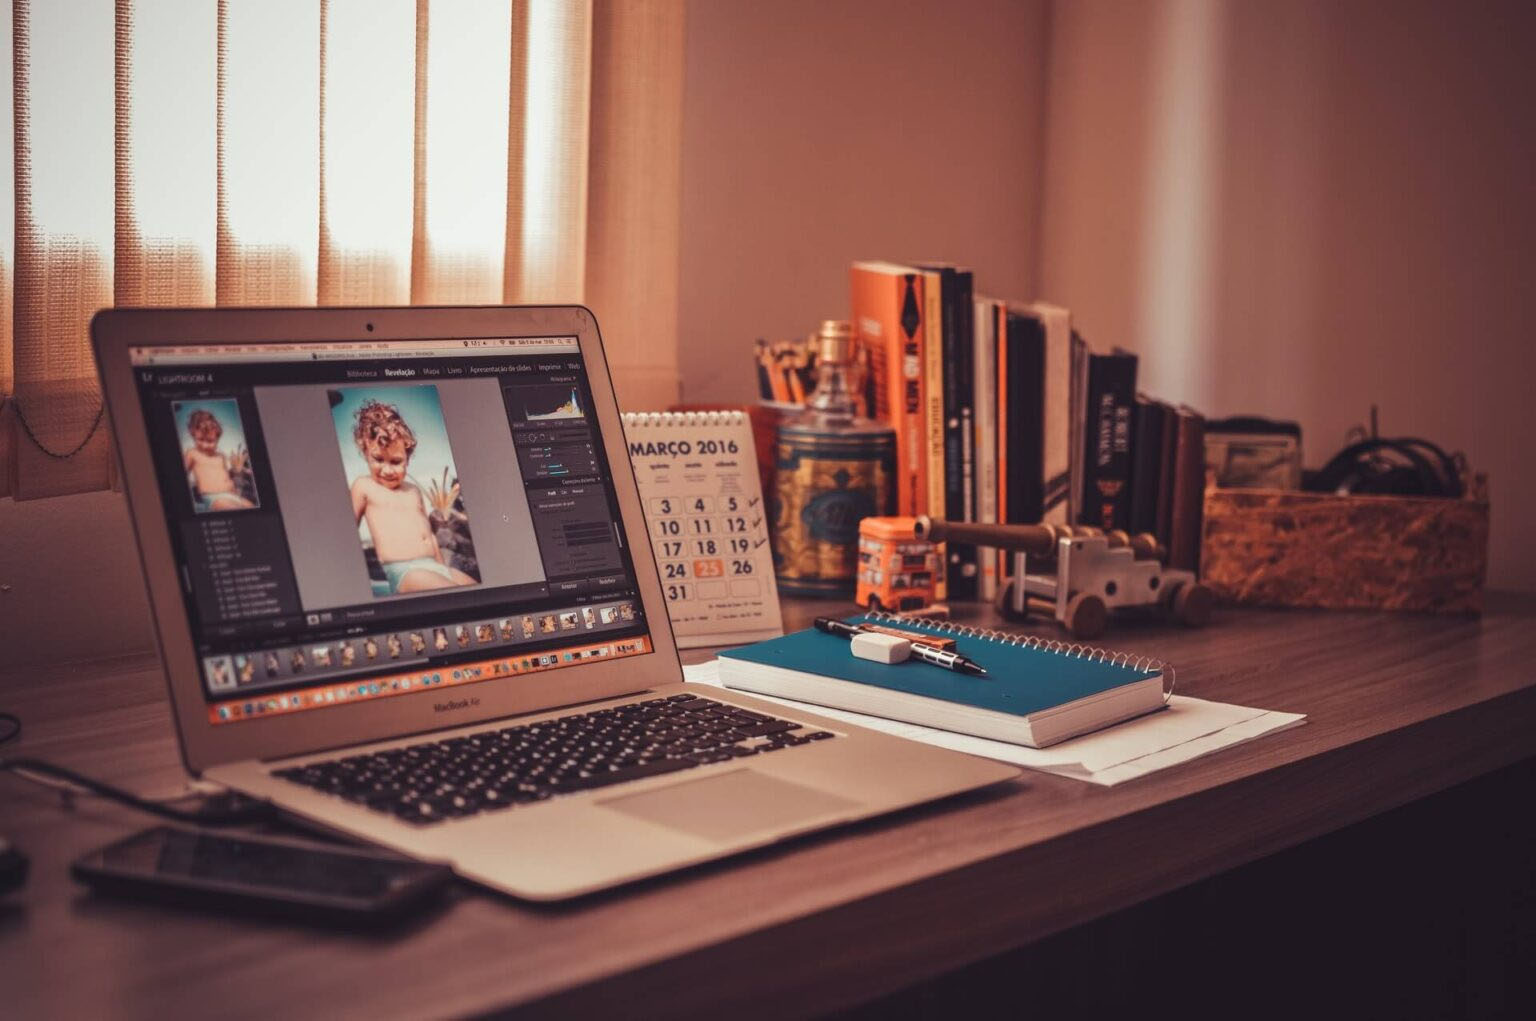 7 Best Chromebooks for Photo Editing: Buyer's Guide